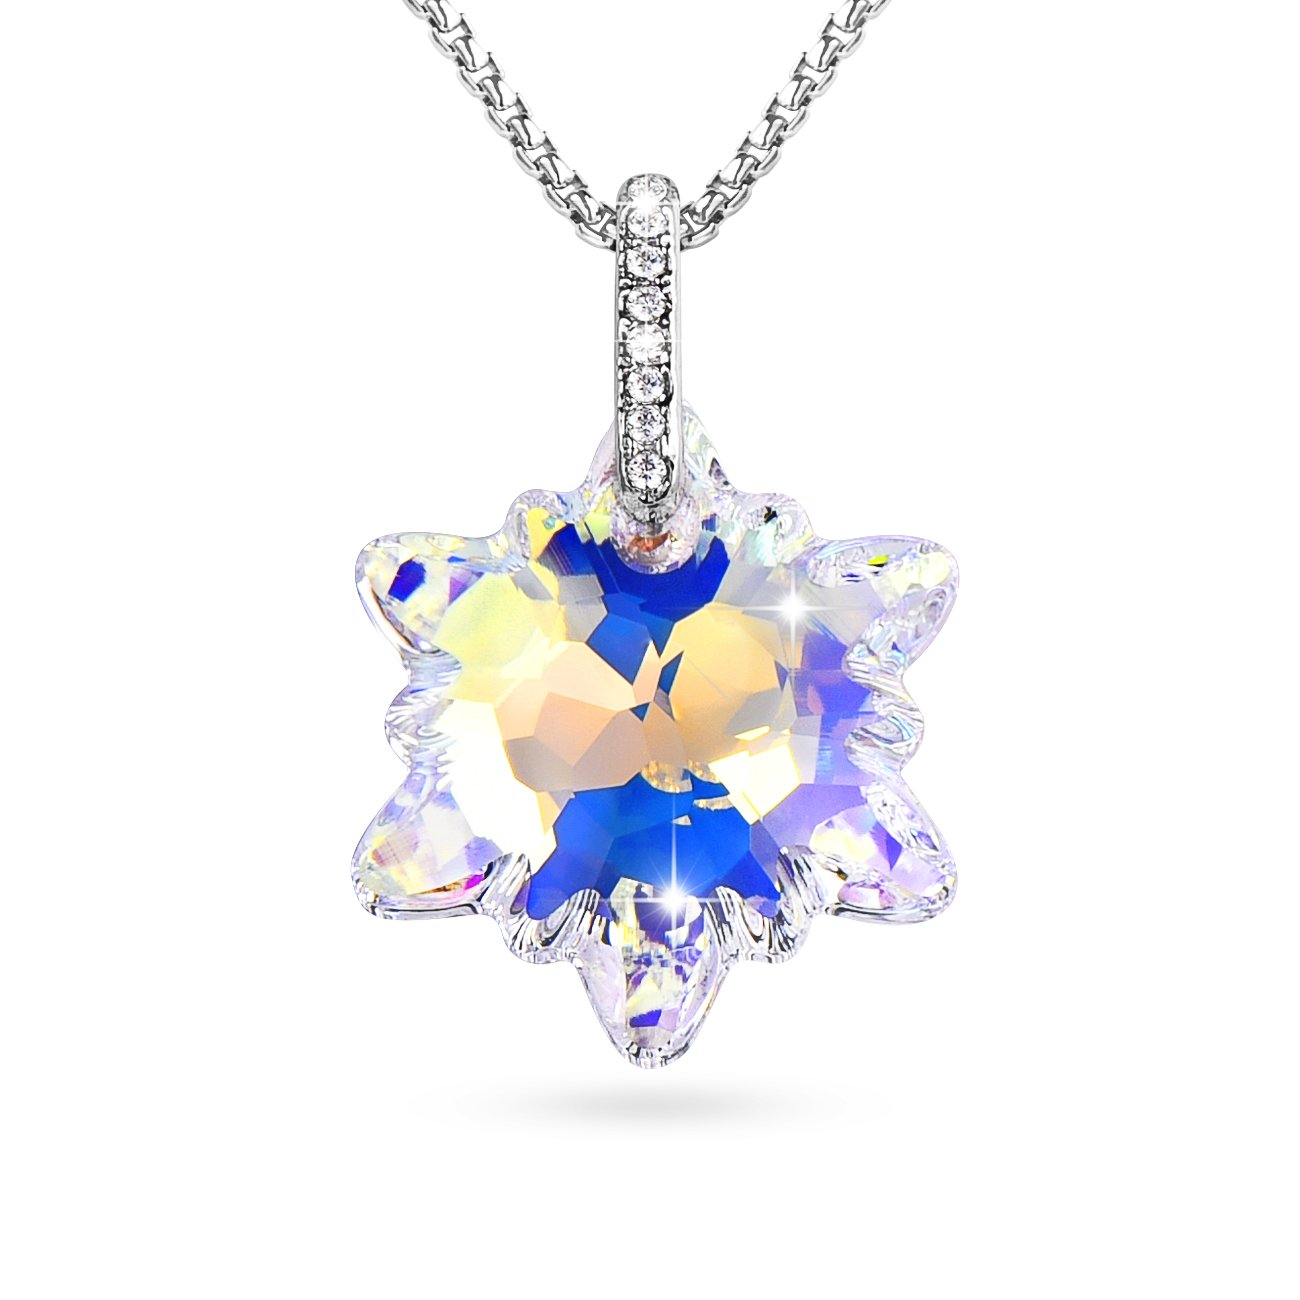 Alantyer Necklace Iridescent Pendant Aurora Edelweiss Graduation Gifts for Her, Crystal from Swarovski